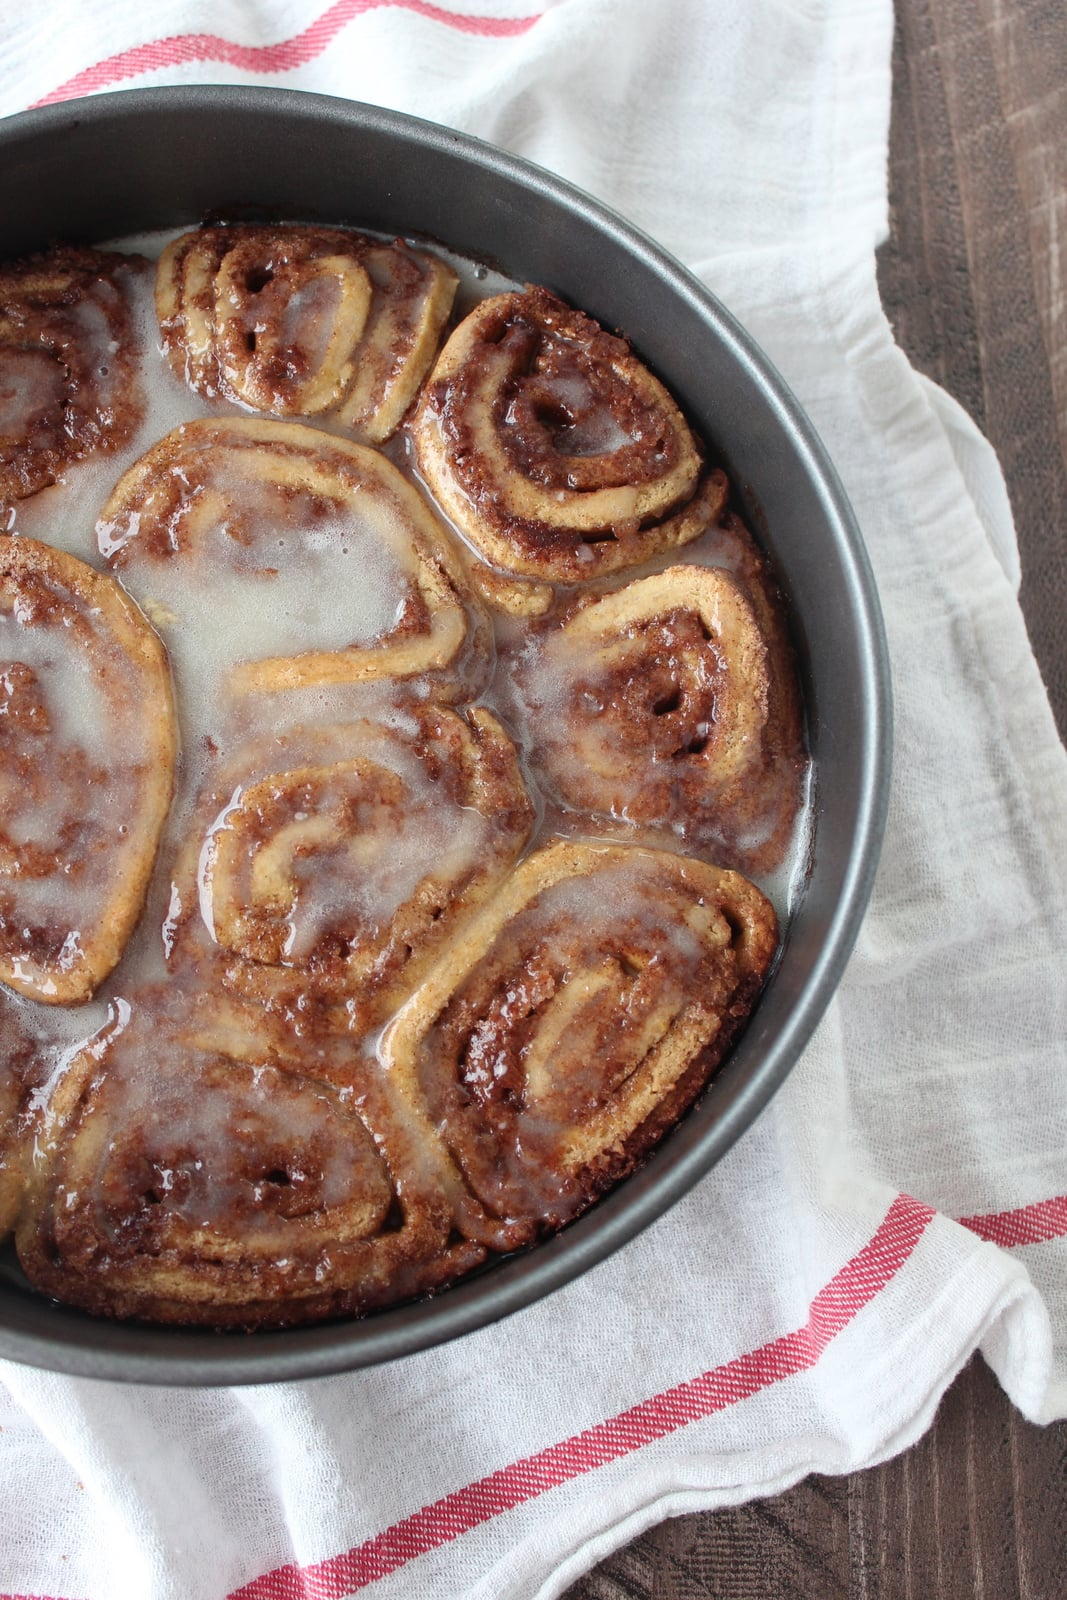 This recipe for Gluten Free Cinnamon Rolls is easy to make, and the ...